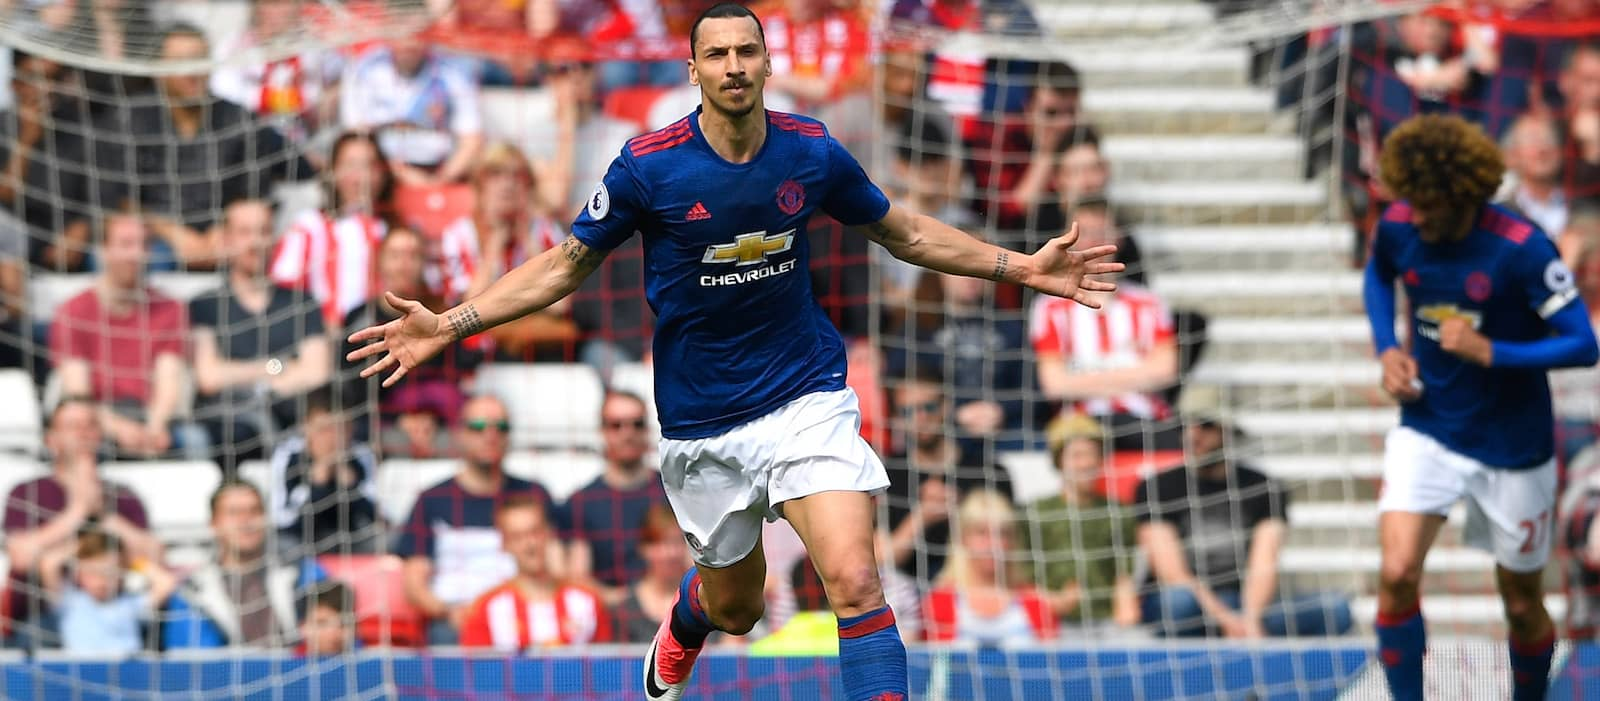 Jose Mourinho explains where Zlatan Ibrahimovic will play next season